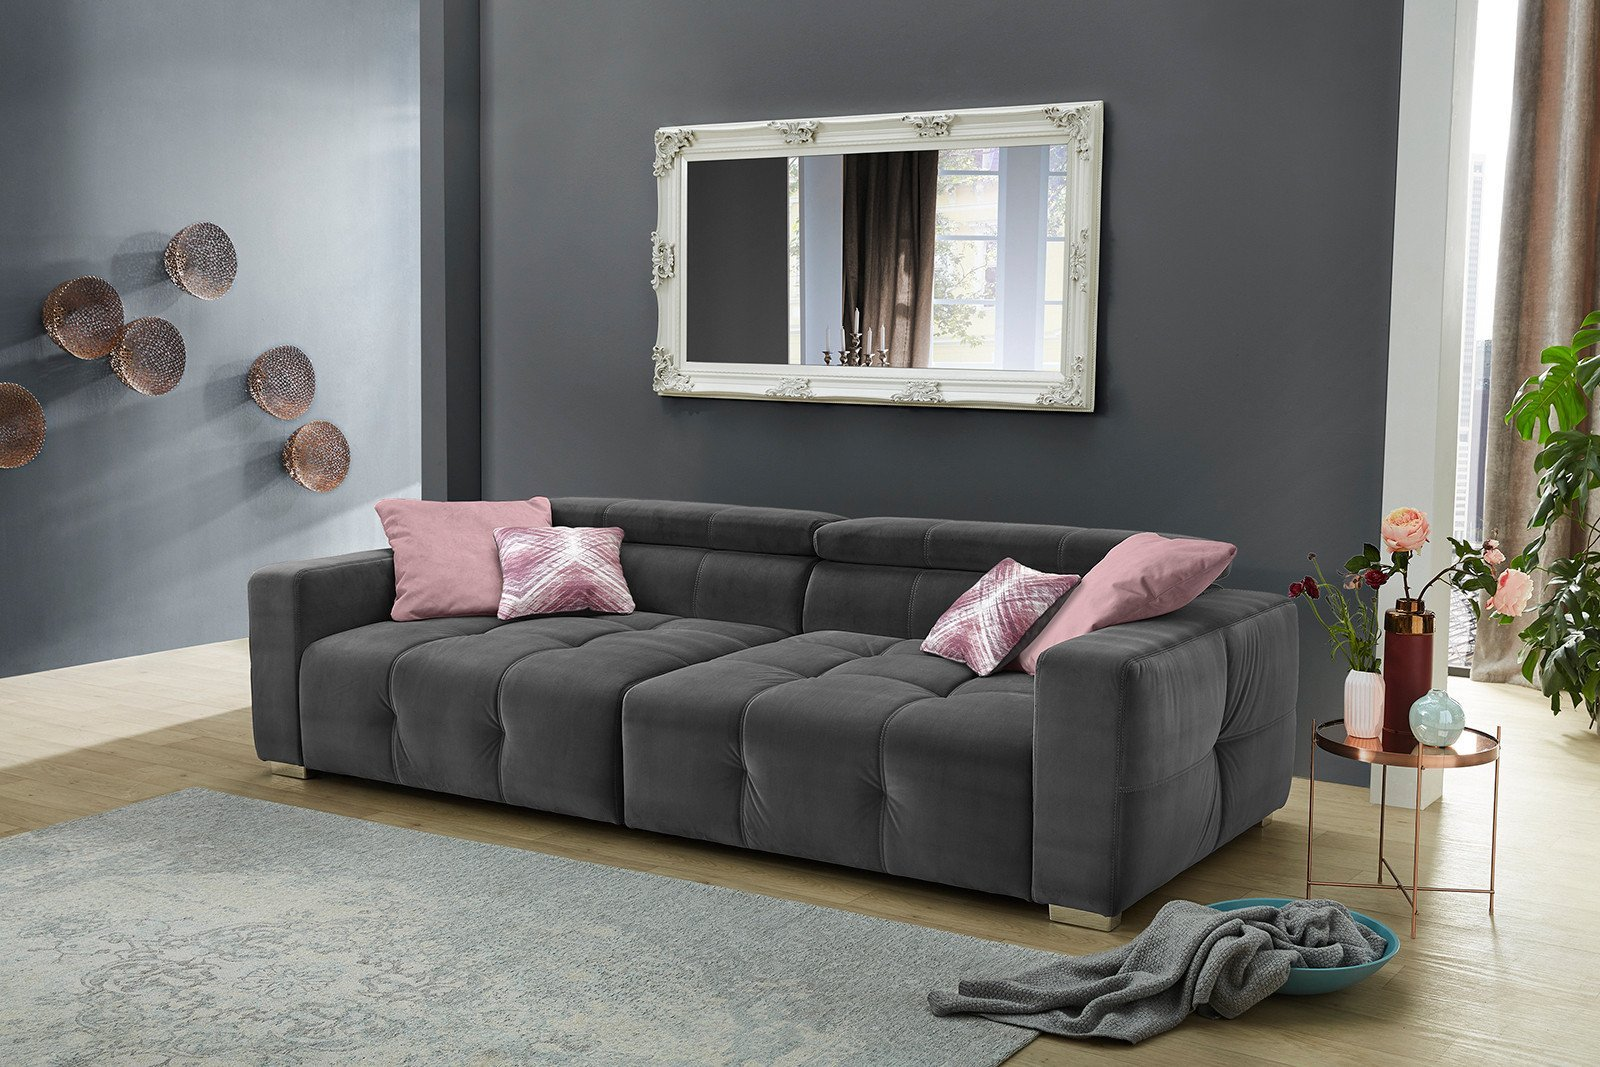 jockenh fer polsterm bel trento xxl sofa in grau m bel. Black Bedroom Furniture Sets. Home Design Ideas